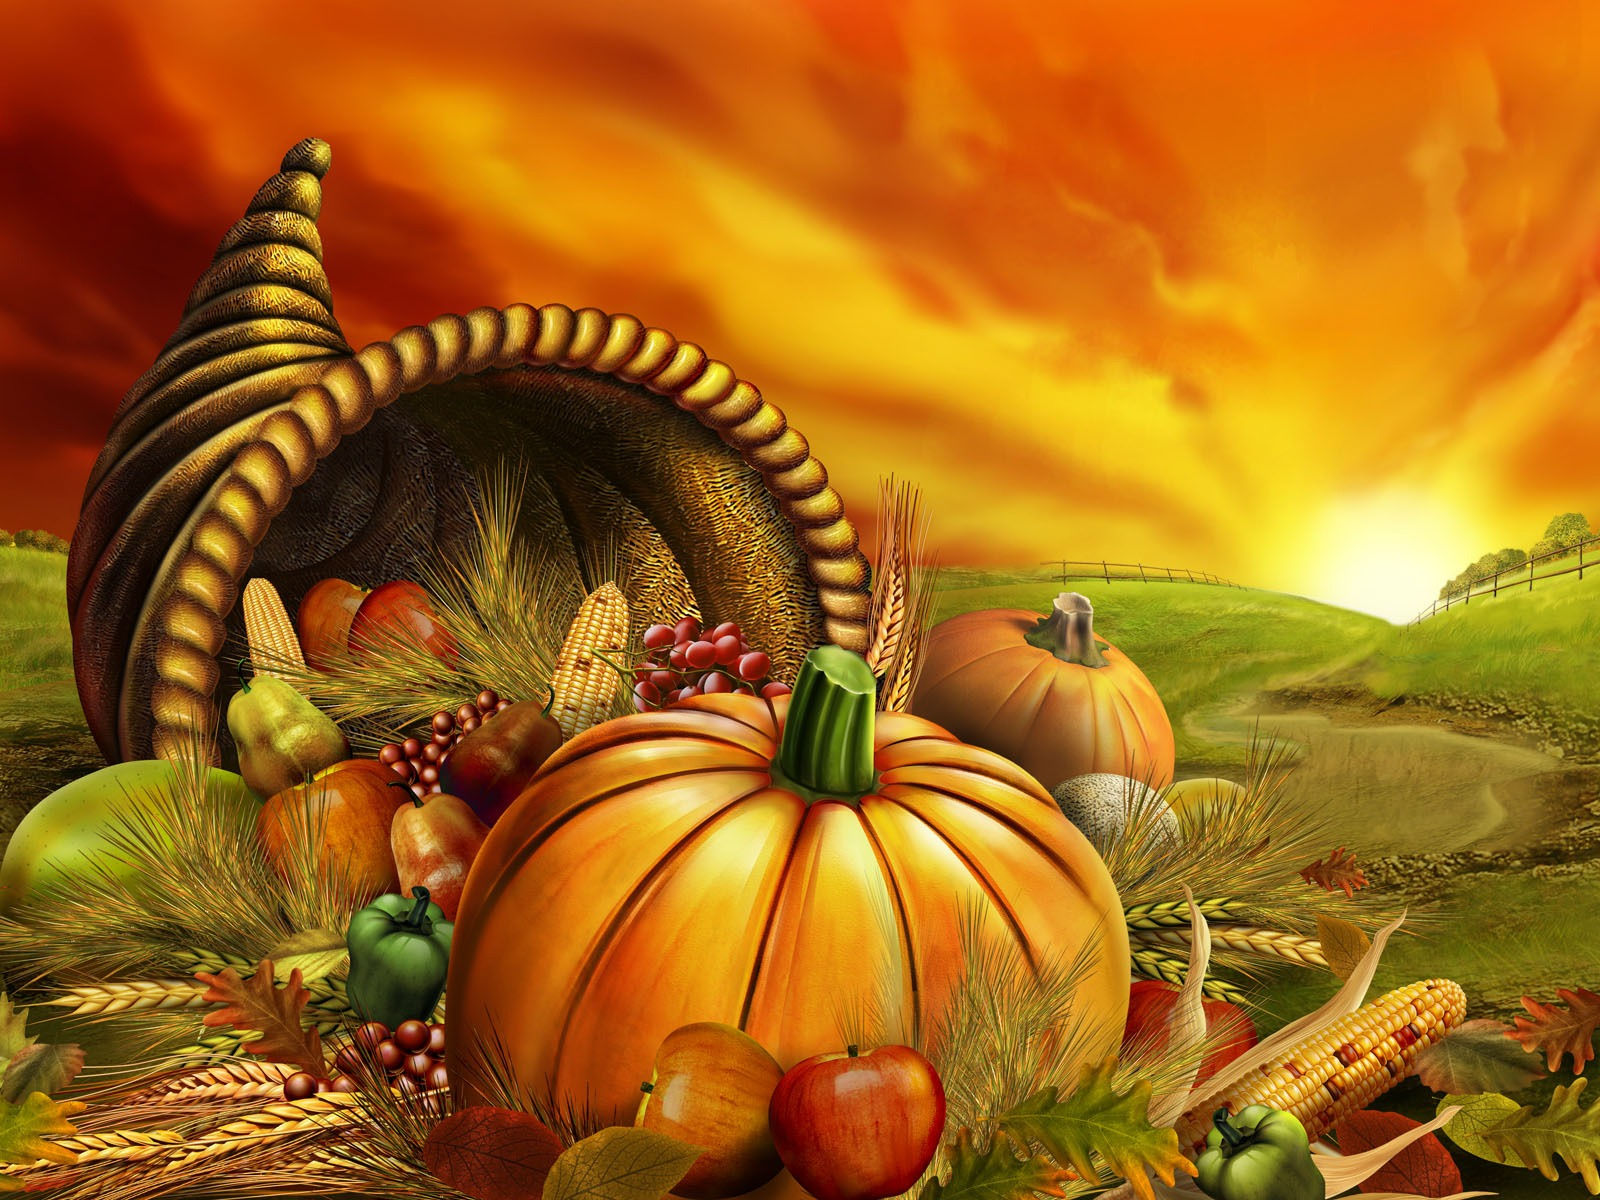 Thanksgiving Desktop Wallpaper and Screensavers 7 1600x1200